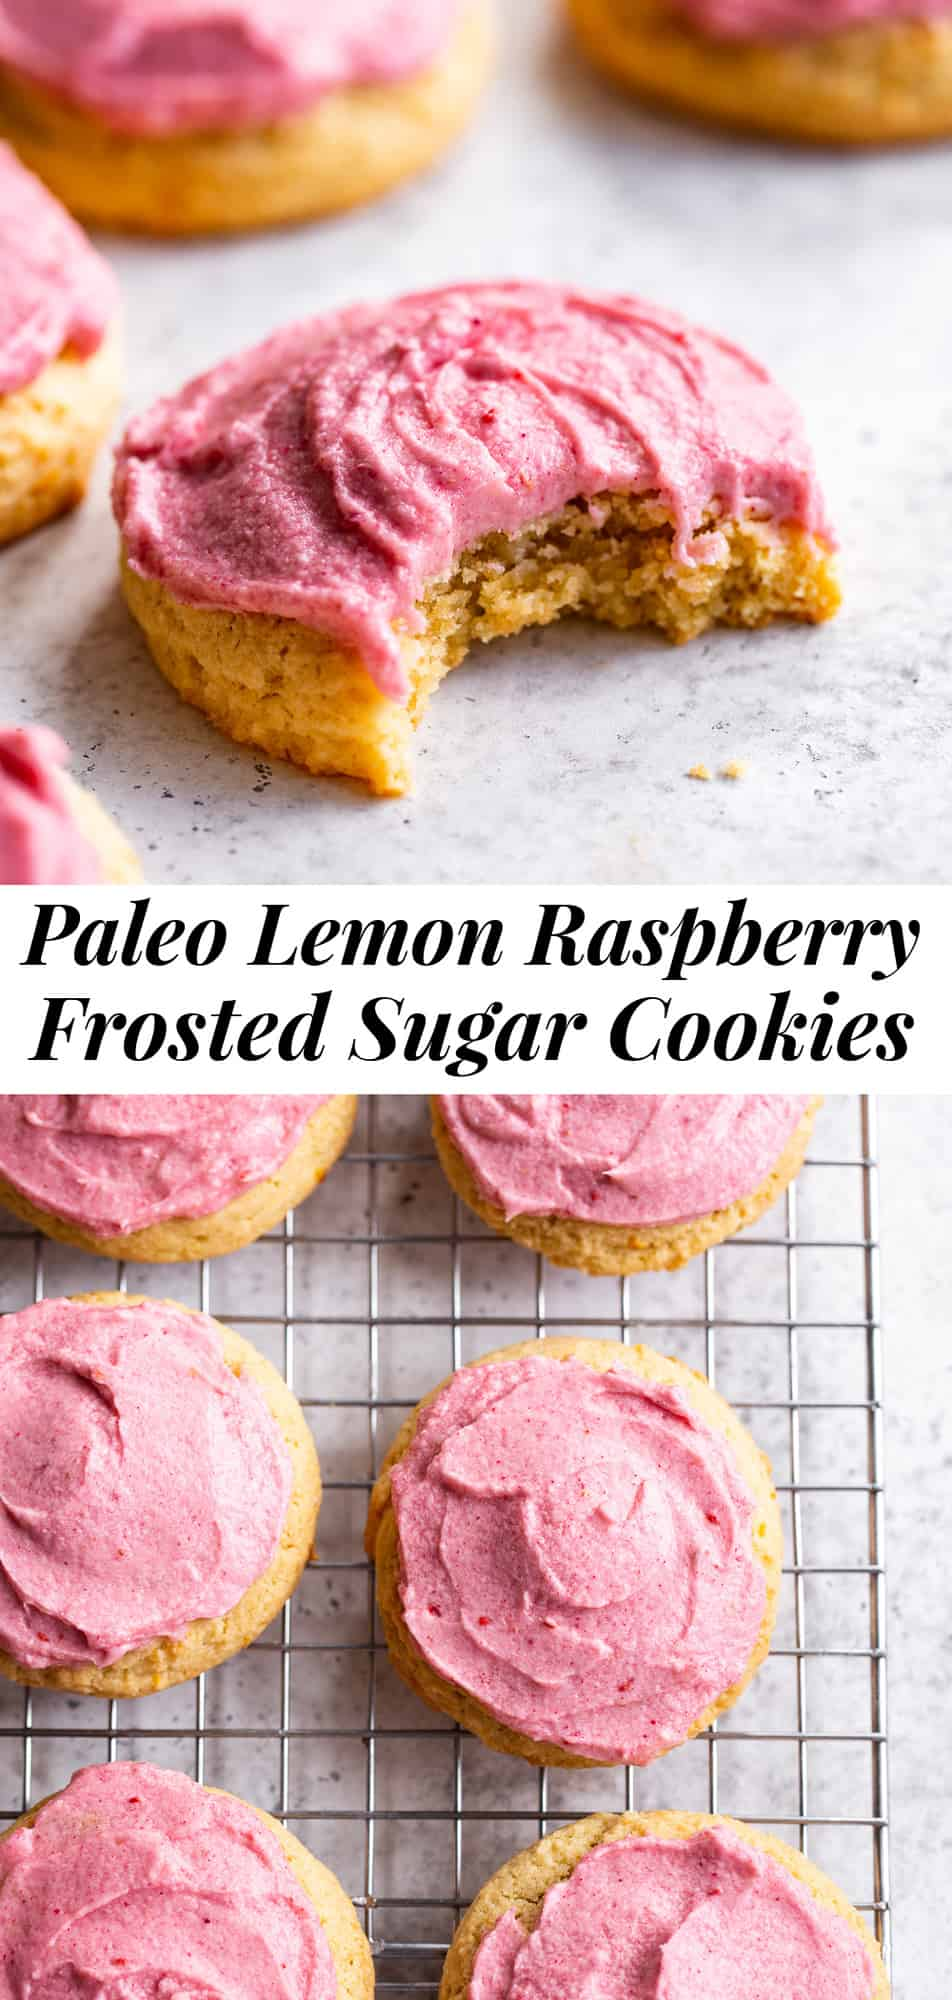 You won't believe how deliciously dreamy these lemon sugar cookies are! Soft and slightly chewy paleo sugar cookies with the perfect amount of lemon flavor are topped with an easy pink raspberry frosting for an extra special treat that everyone will love. No one would ever guess these cookies are gluten free, dairy free and refined sugar free! #paleo #cleaneating #glutenfree #paleobaking #paleodessert #paleocookies #sugarcookies